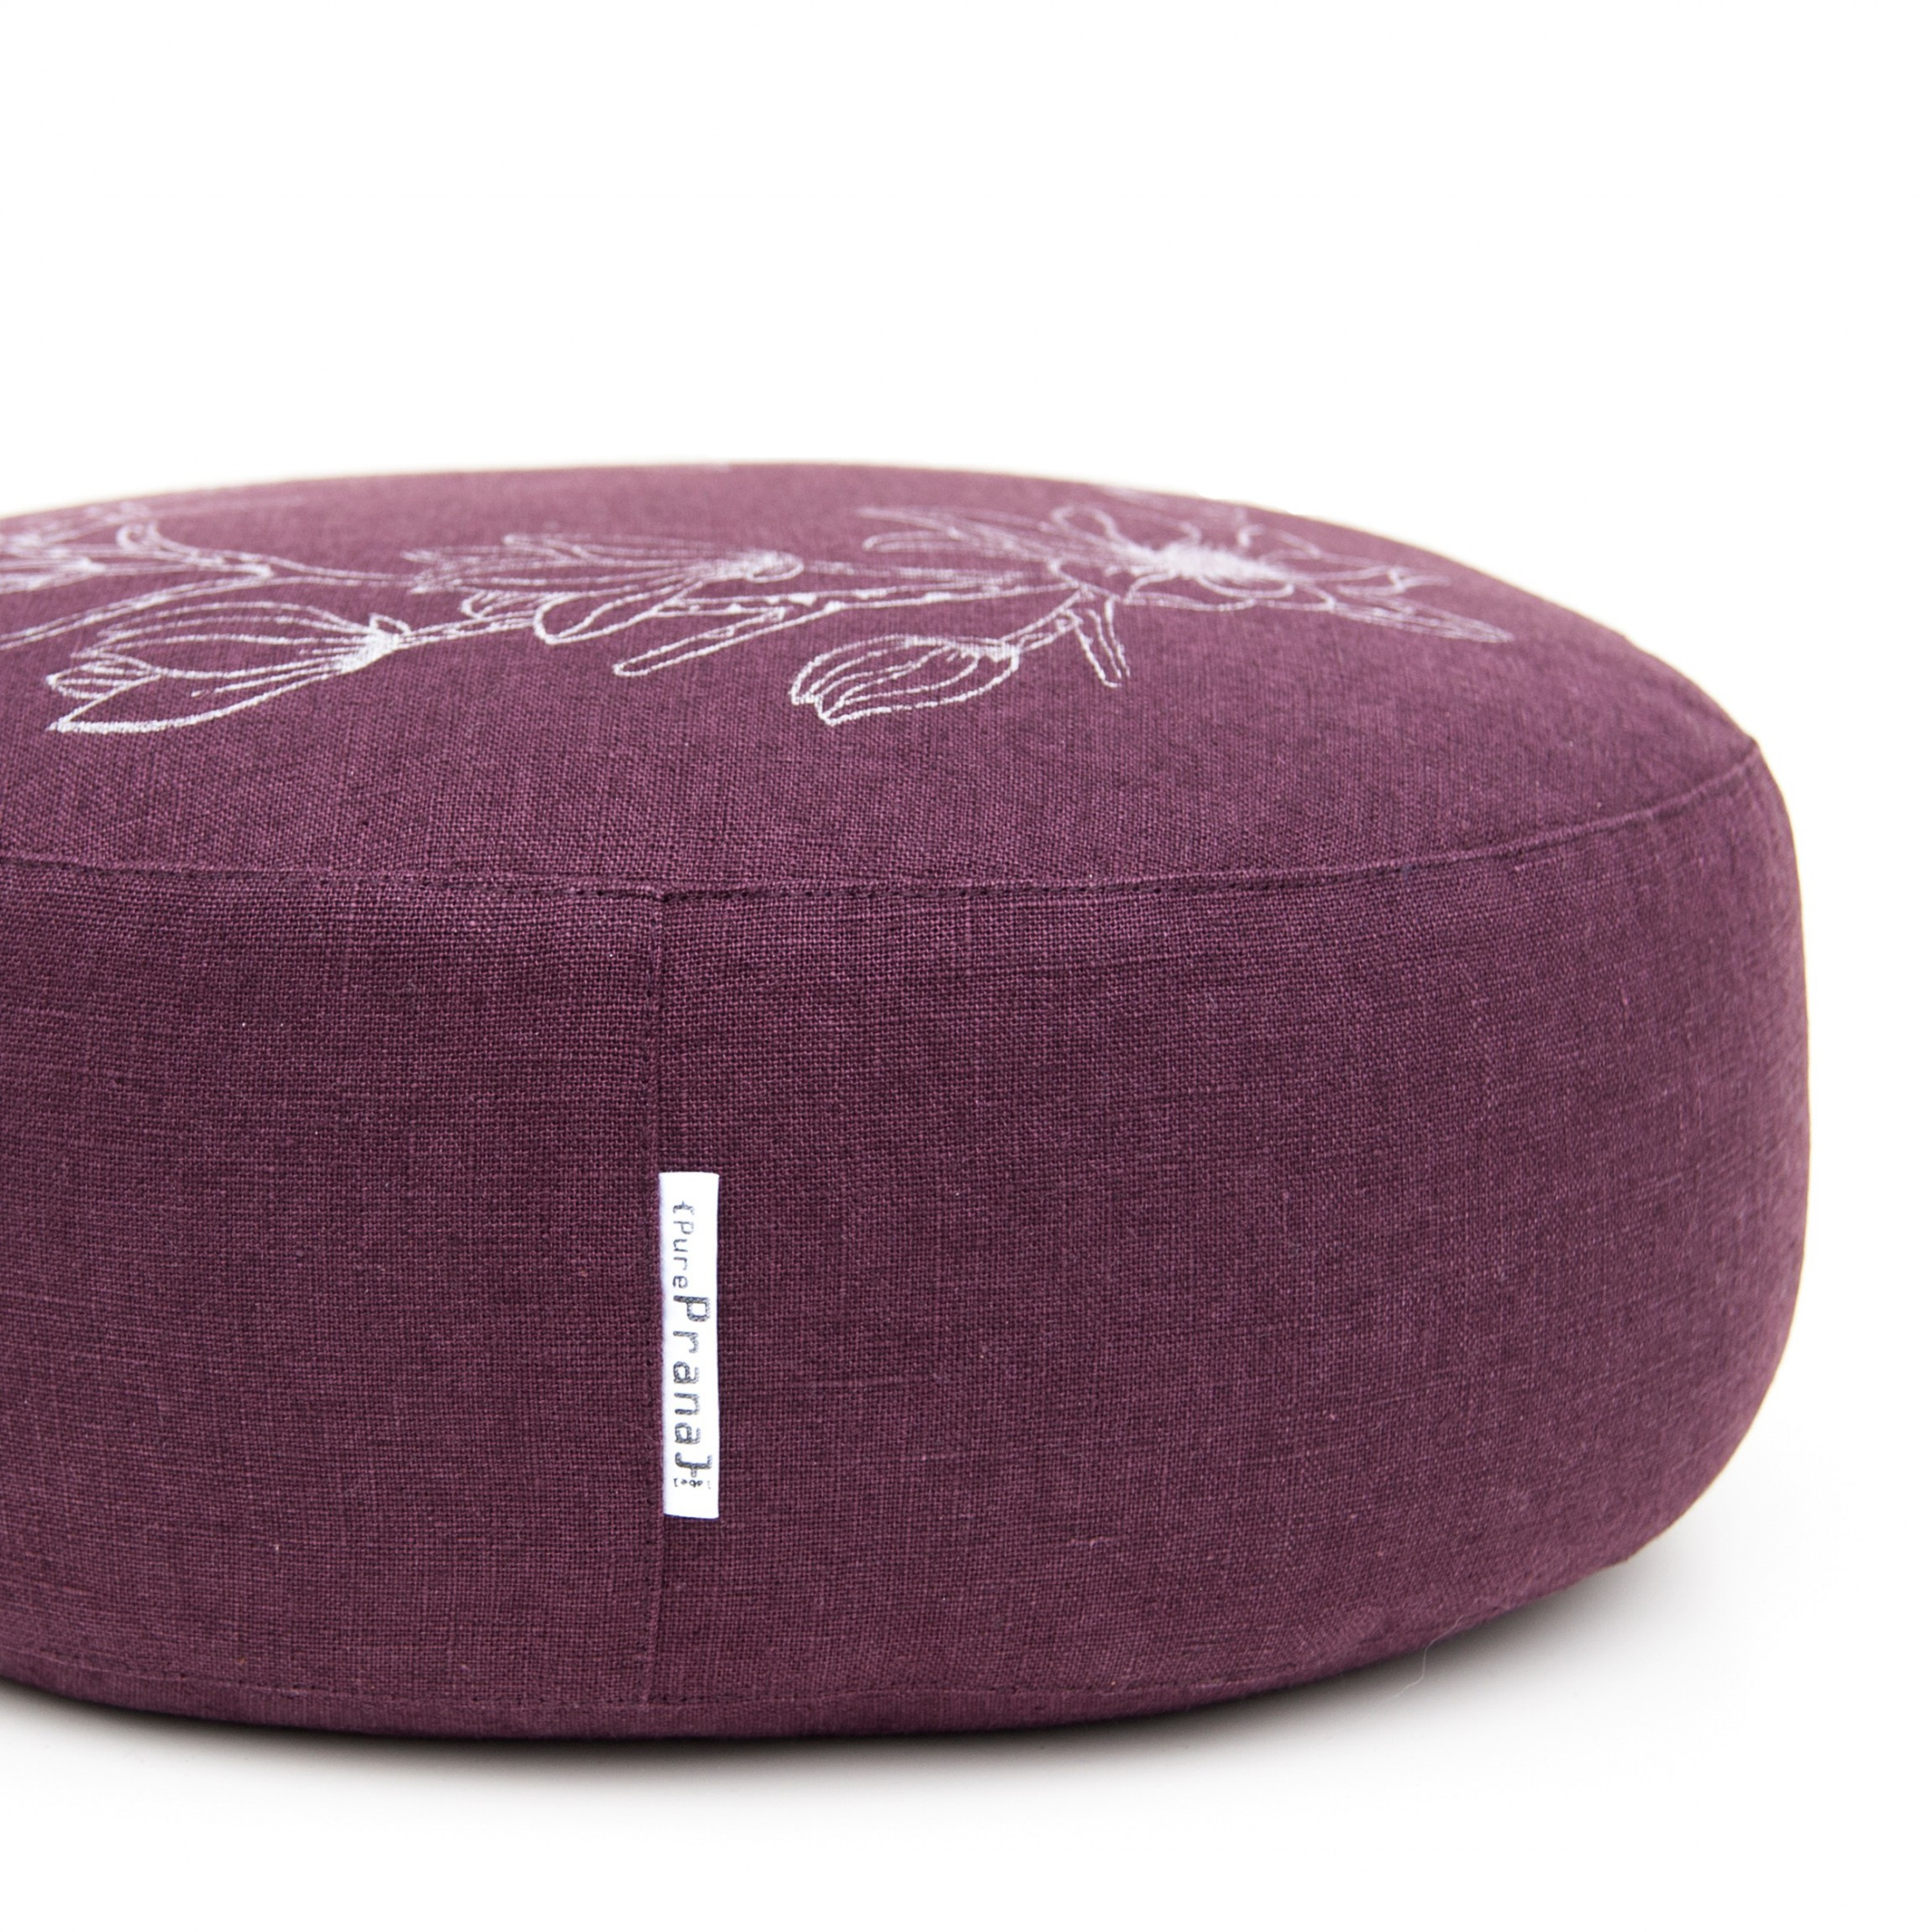 Eggplant meditation cushion by Pure Prana Label